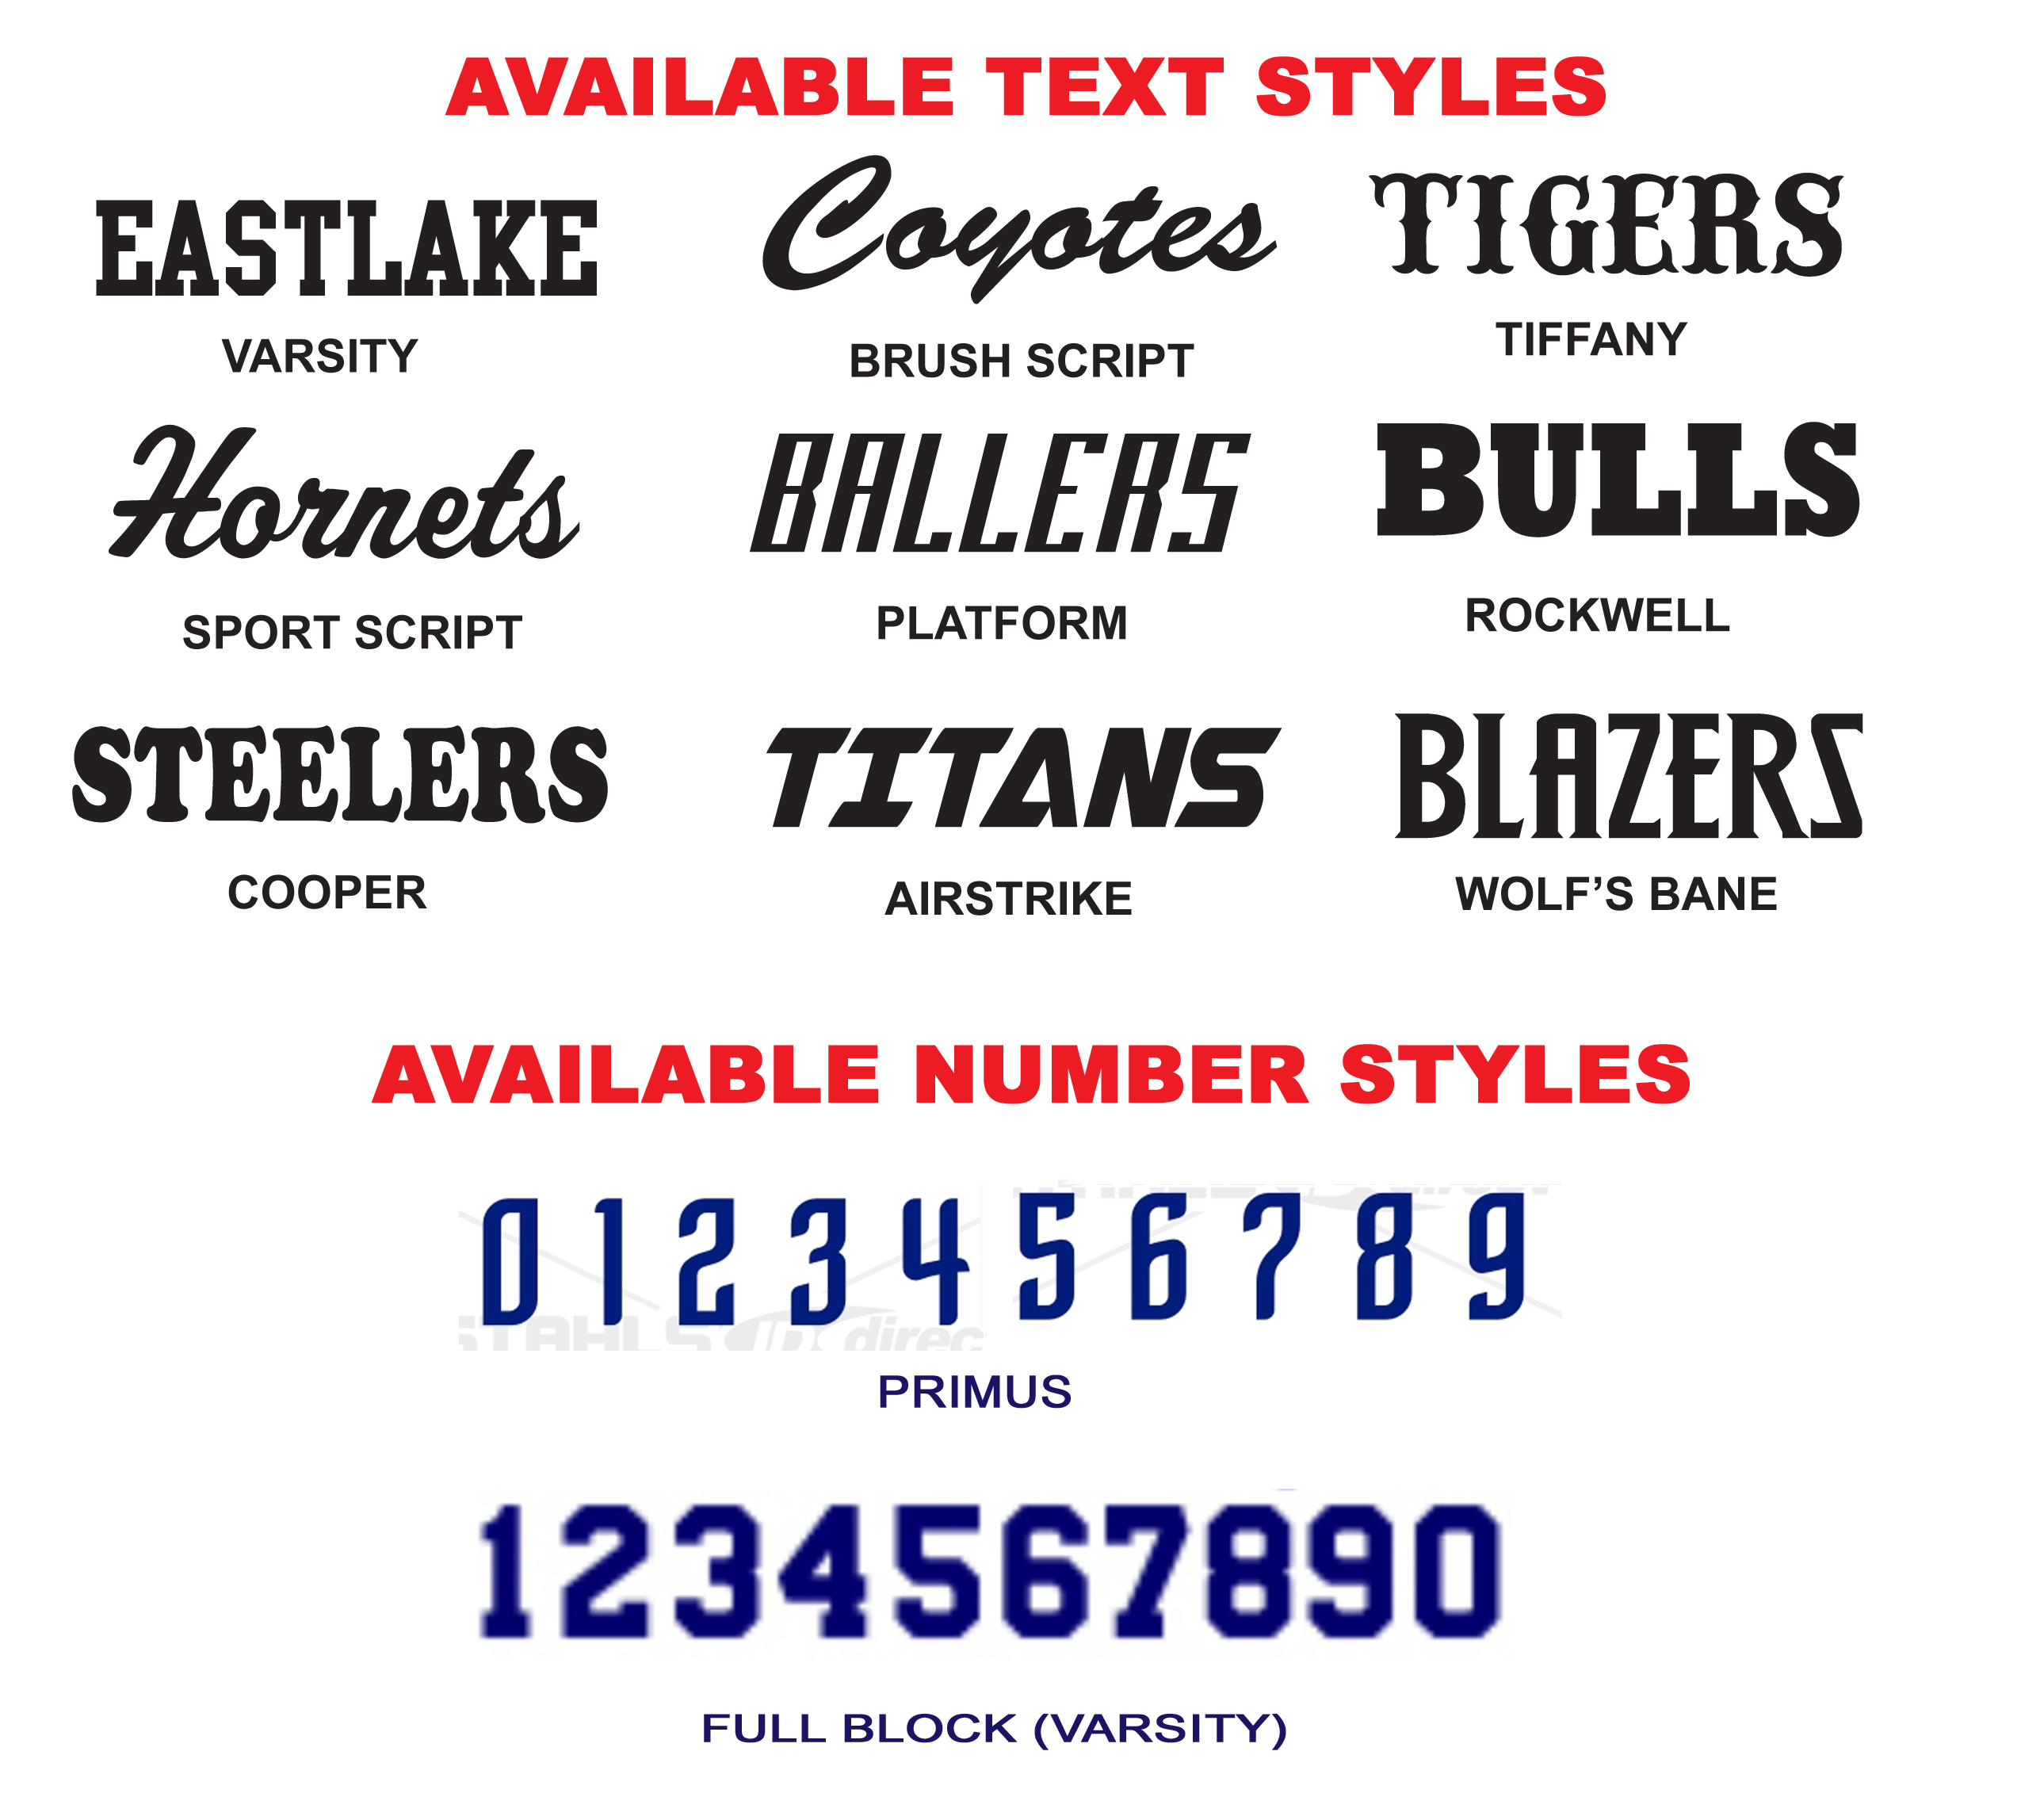 8 Jersey Letter Font Styles Images - Jersey Letters Font ...